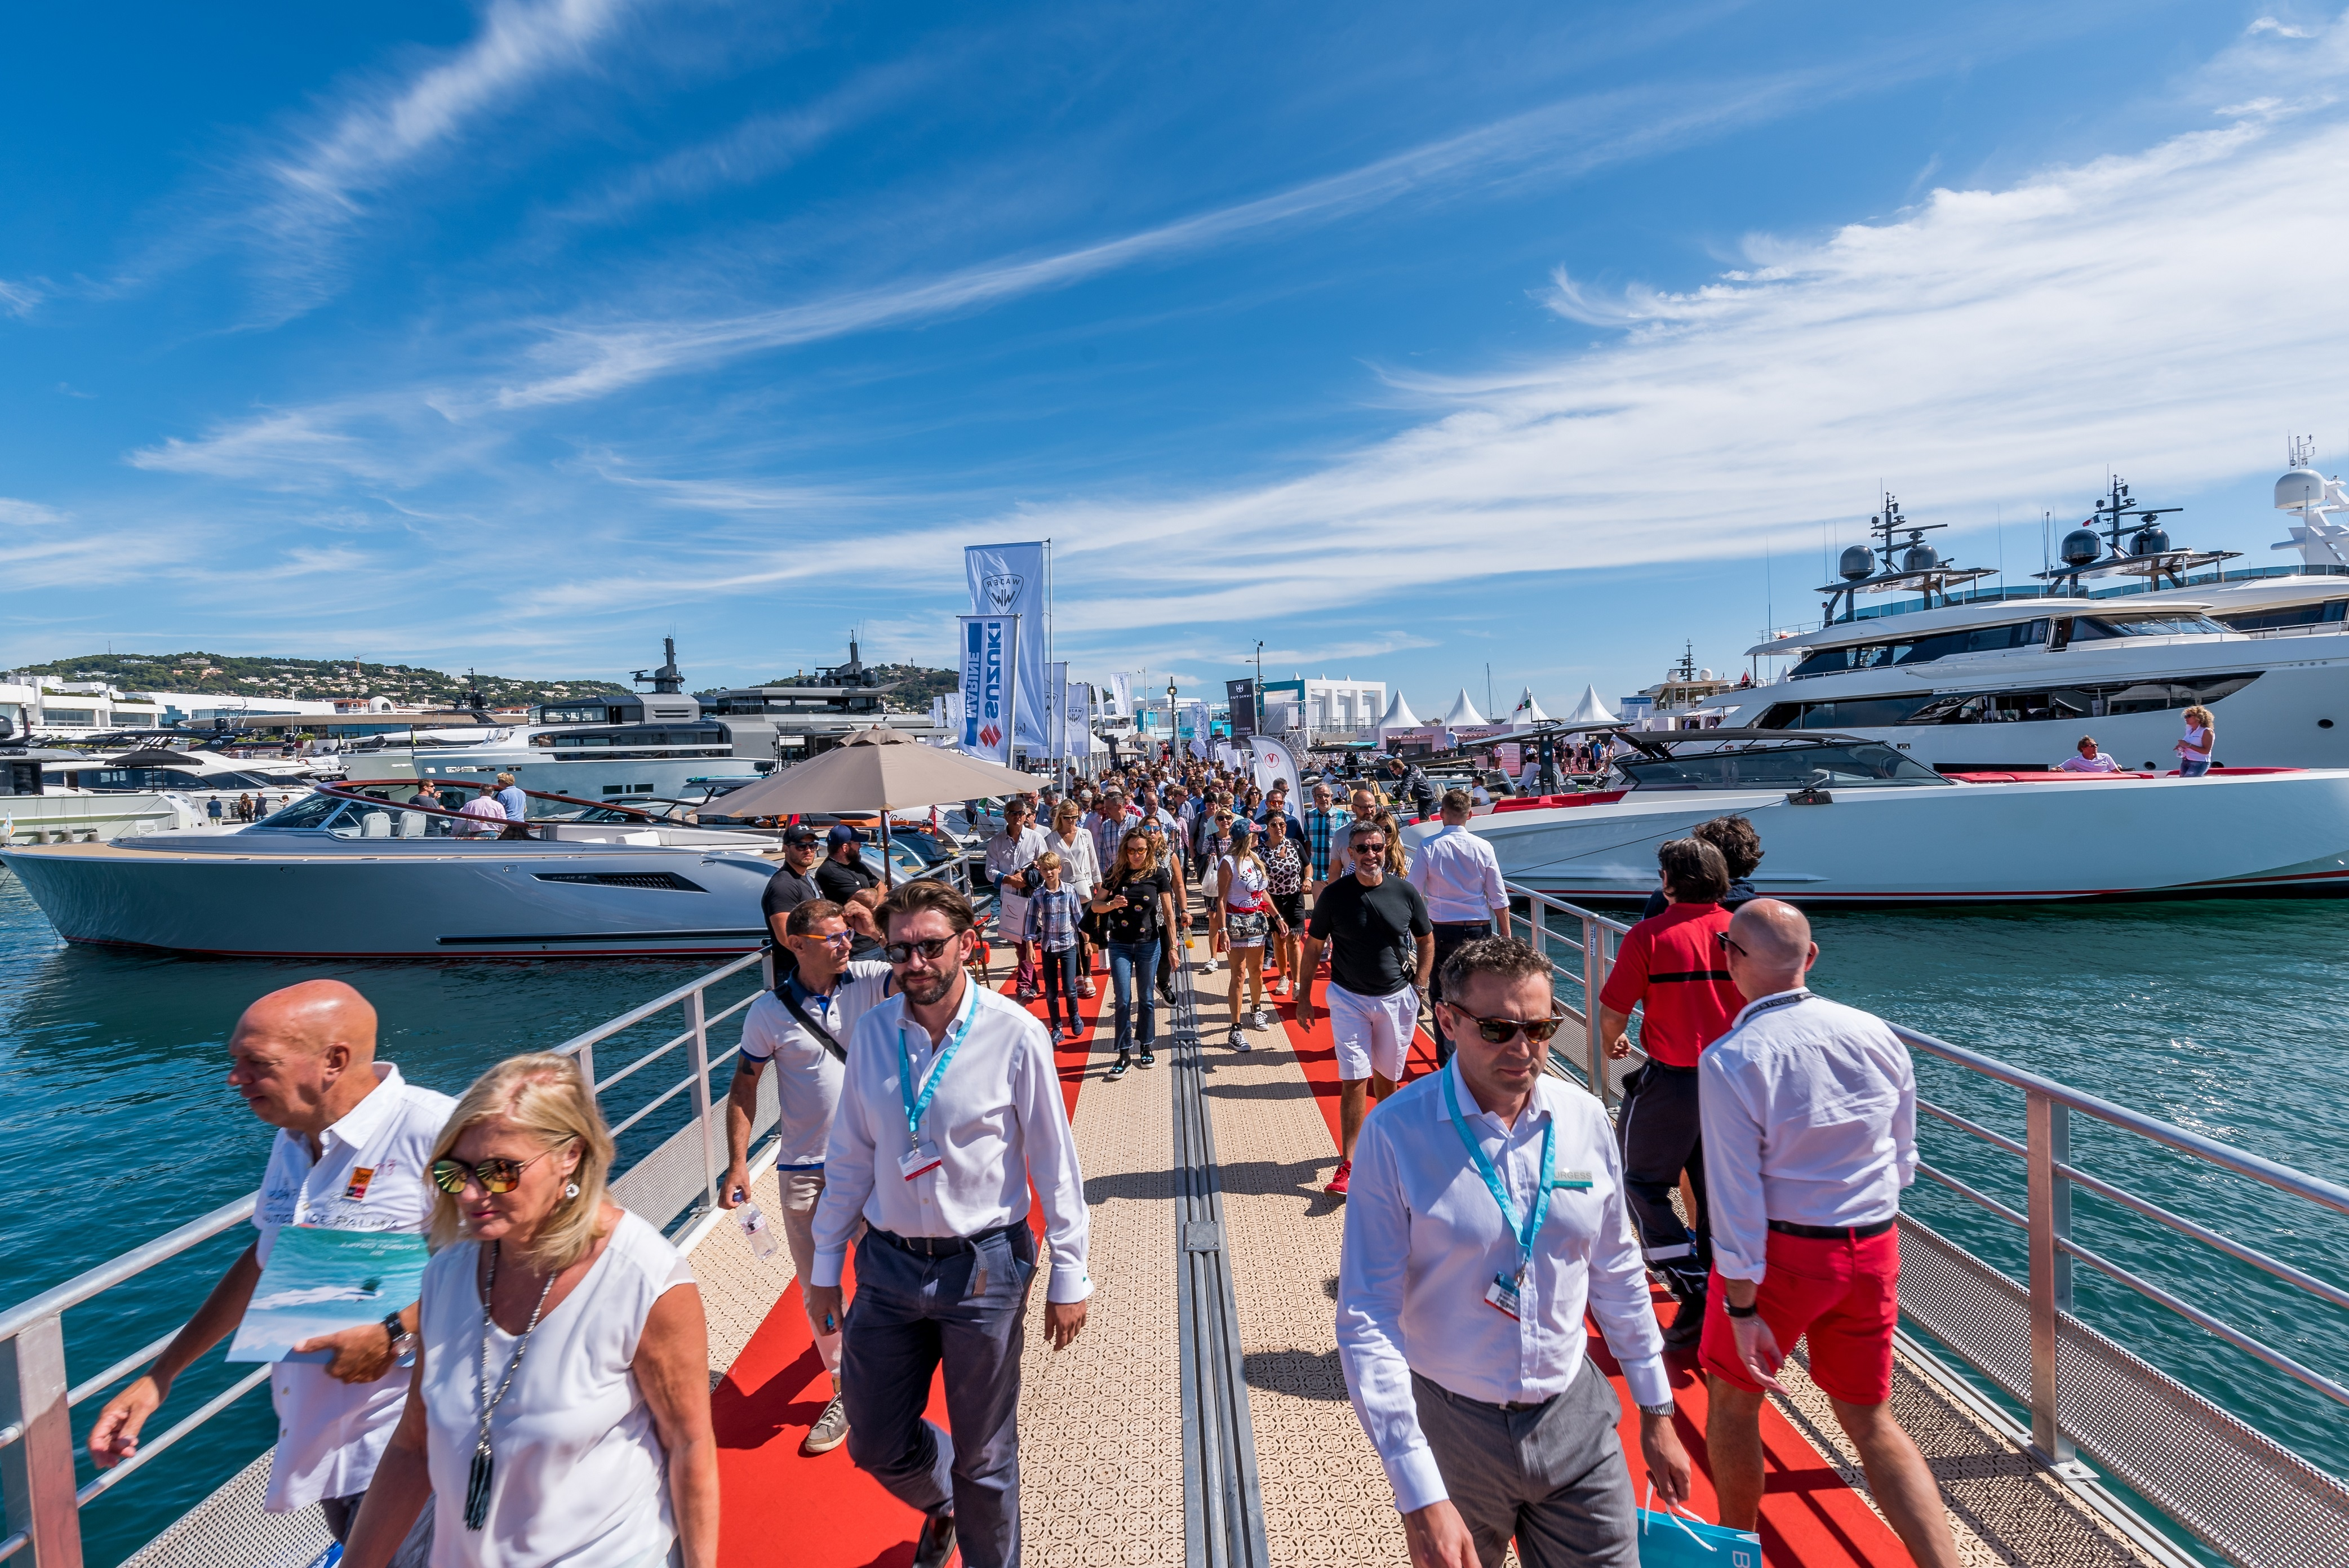 Salon Nautique Cannes Cannes Yachting Festival To Showcase Luxury Superyachts